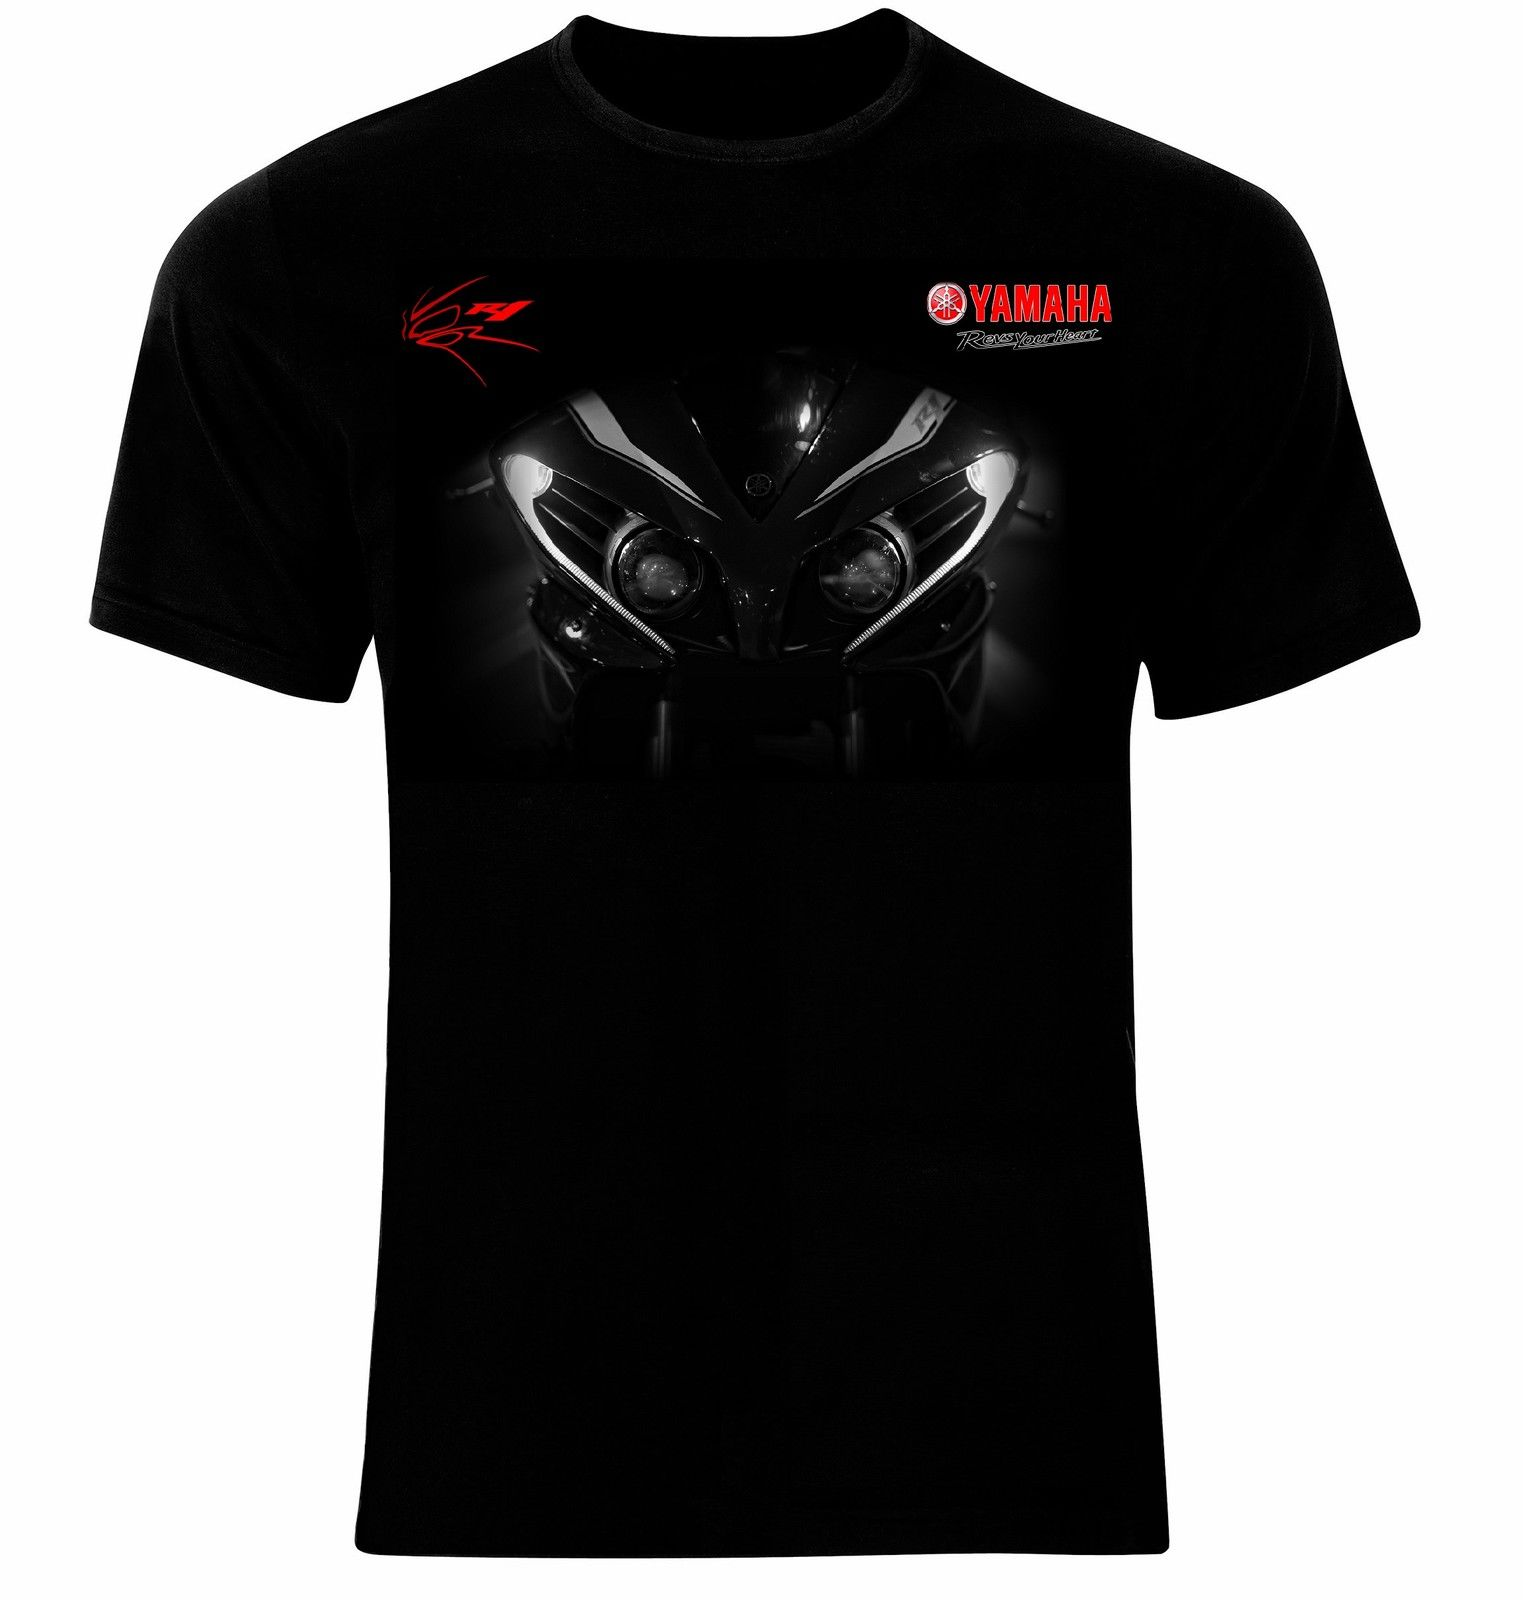 Black yamaha t shirt - Yamaha R1 Headlights Revs Your Heart Manner Printed T Shirt T Shirt Men Summer Casual